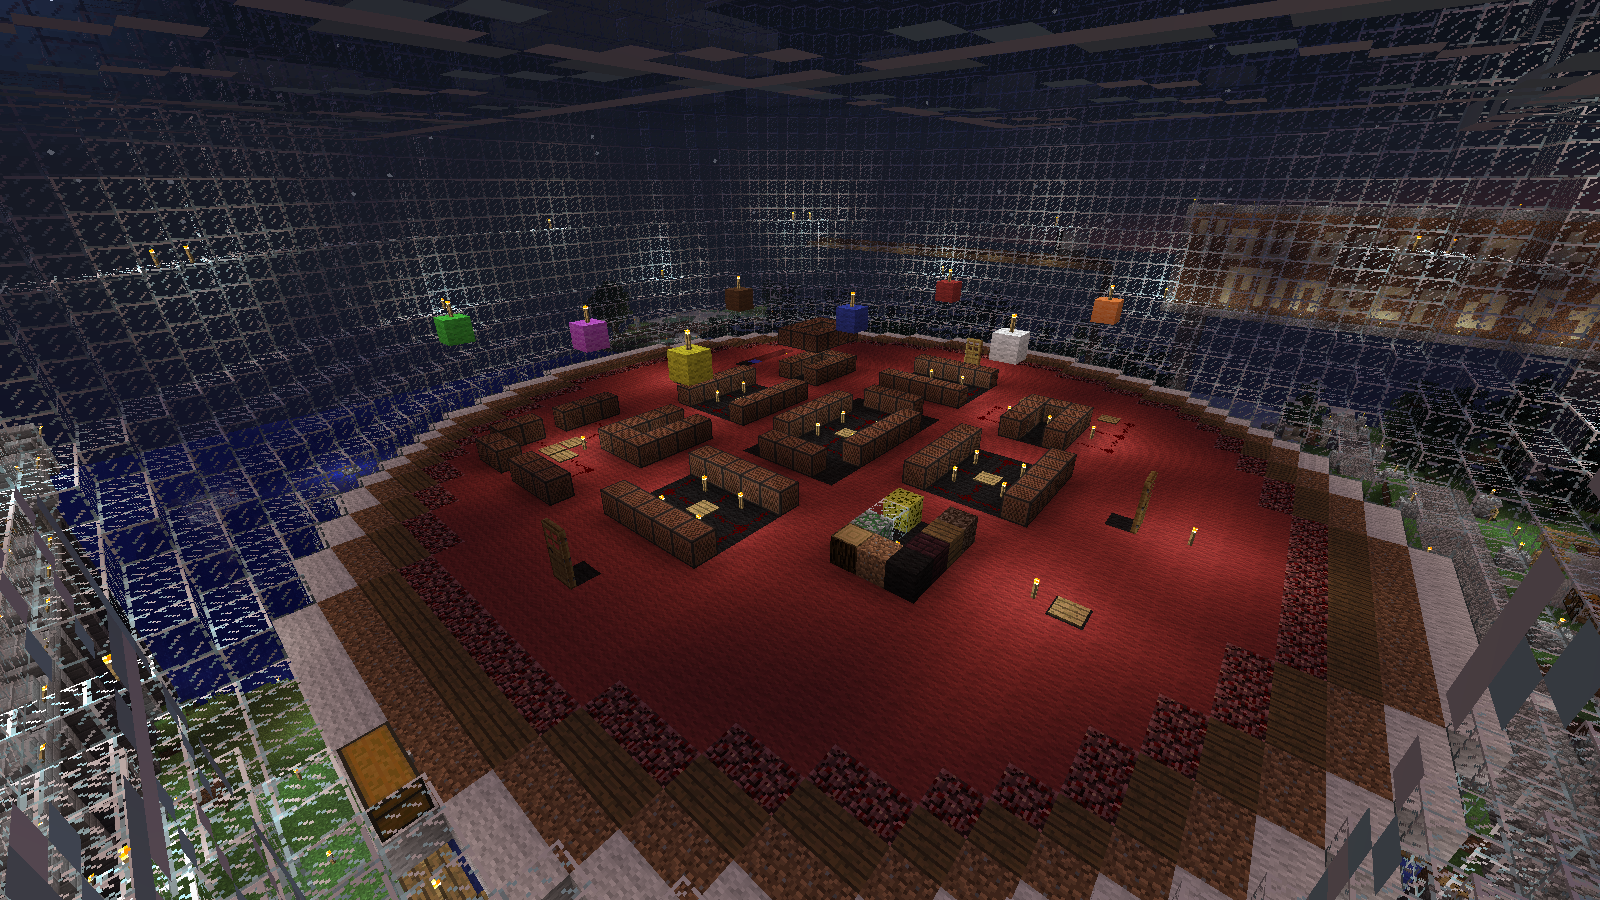 Instruments in Enderman Arena of Music